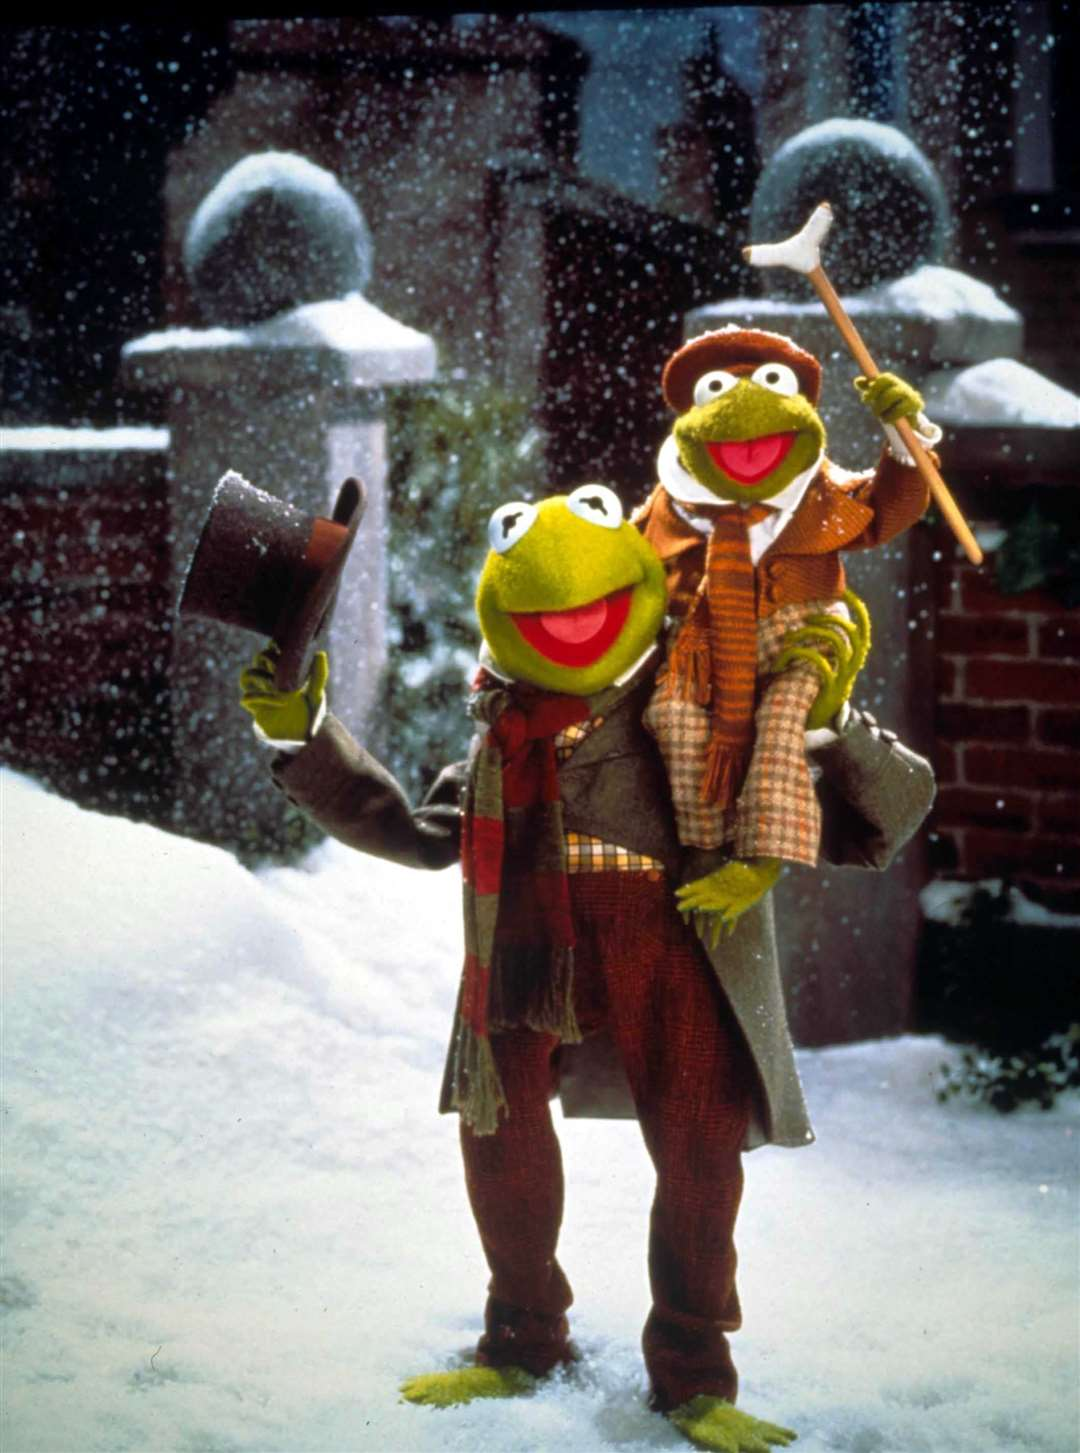 The Muppet Christmas Carol